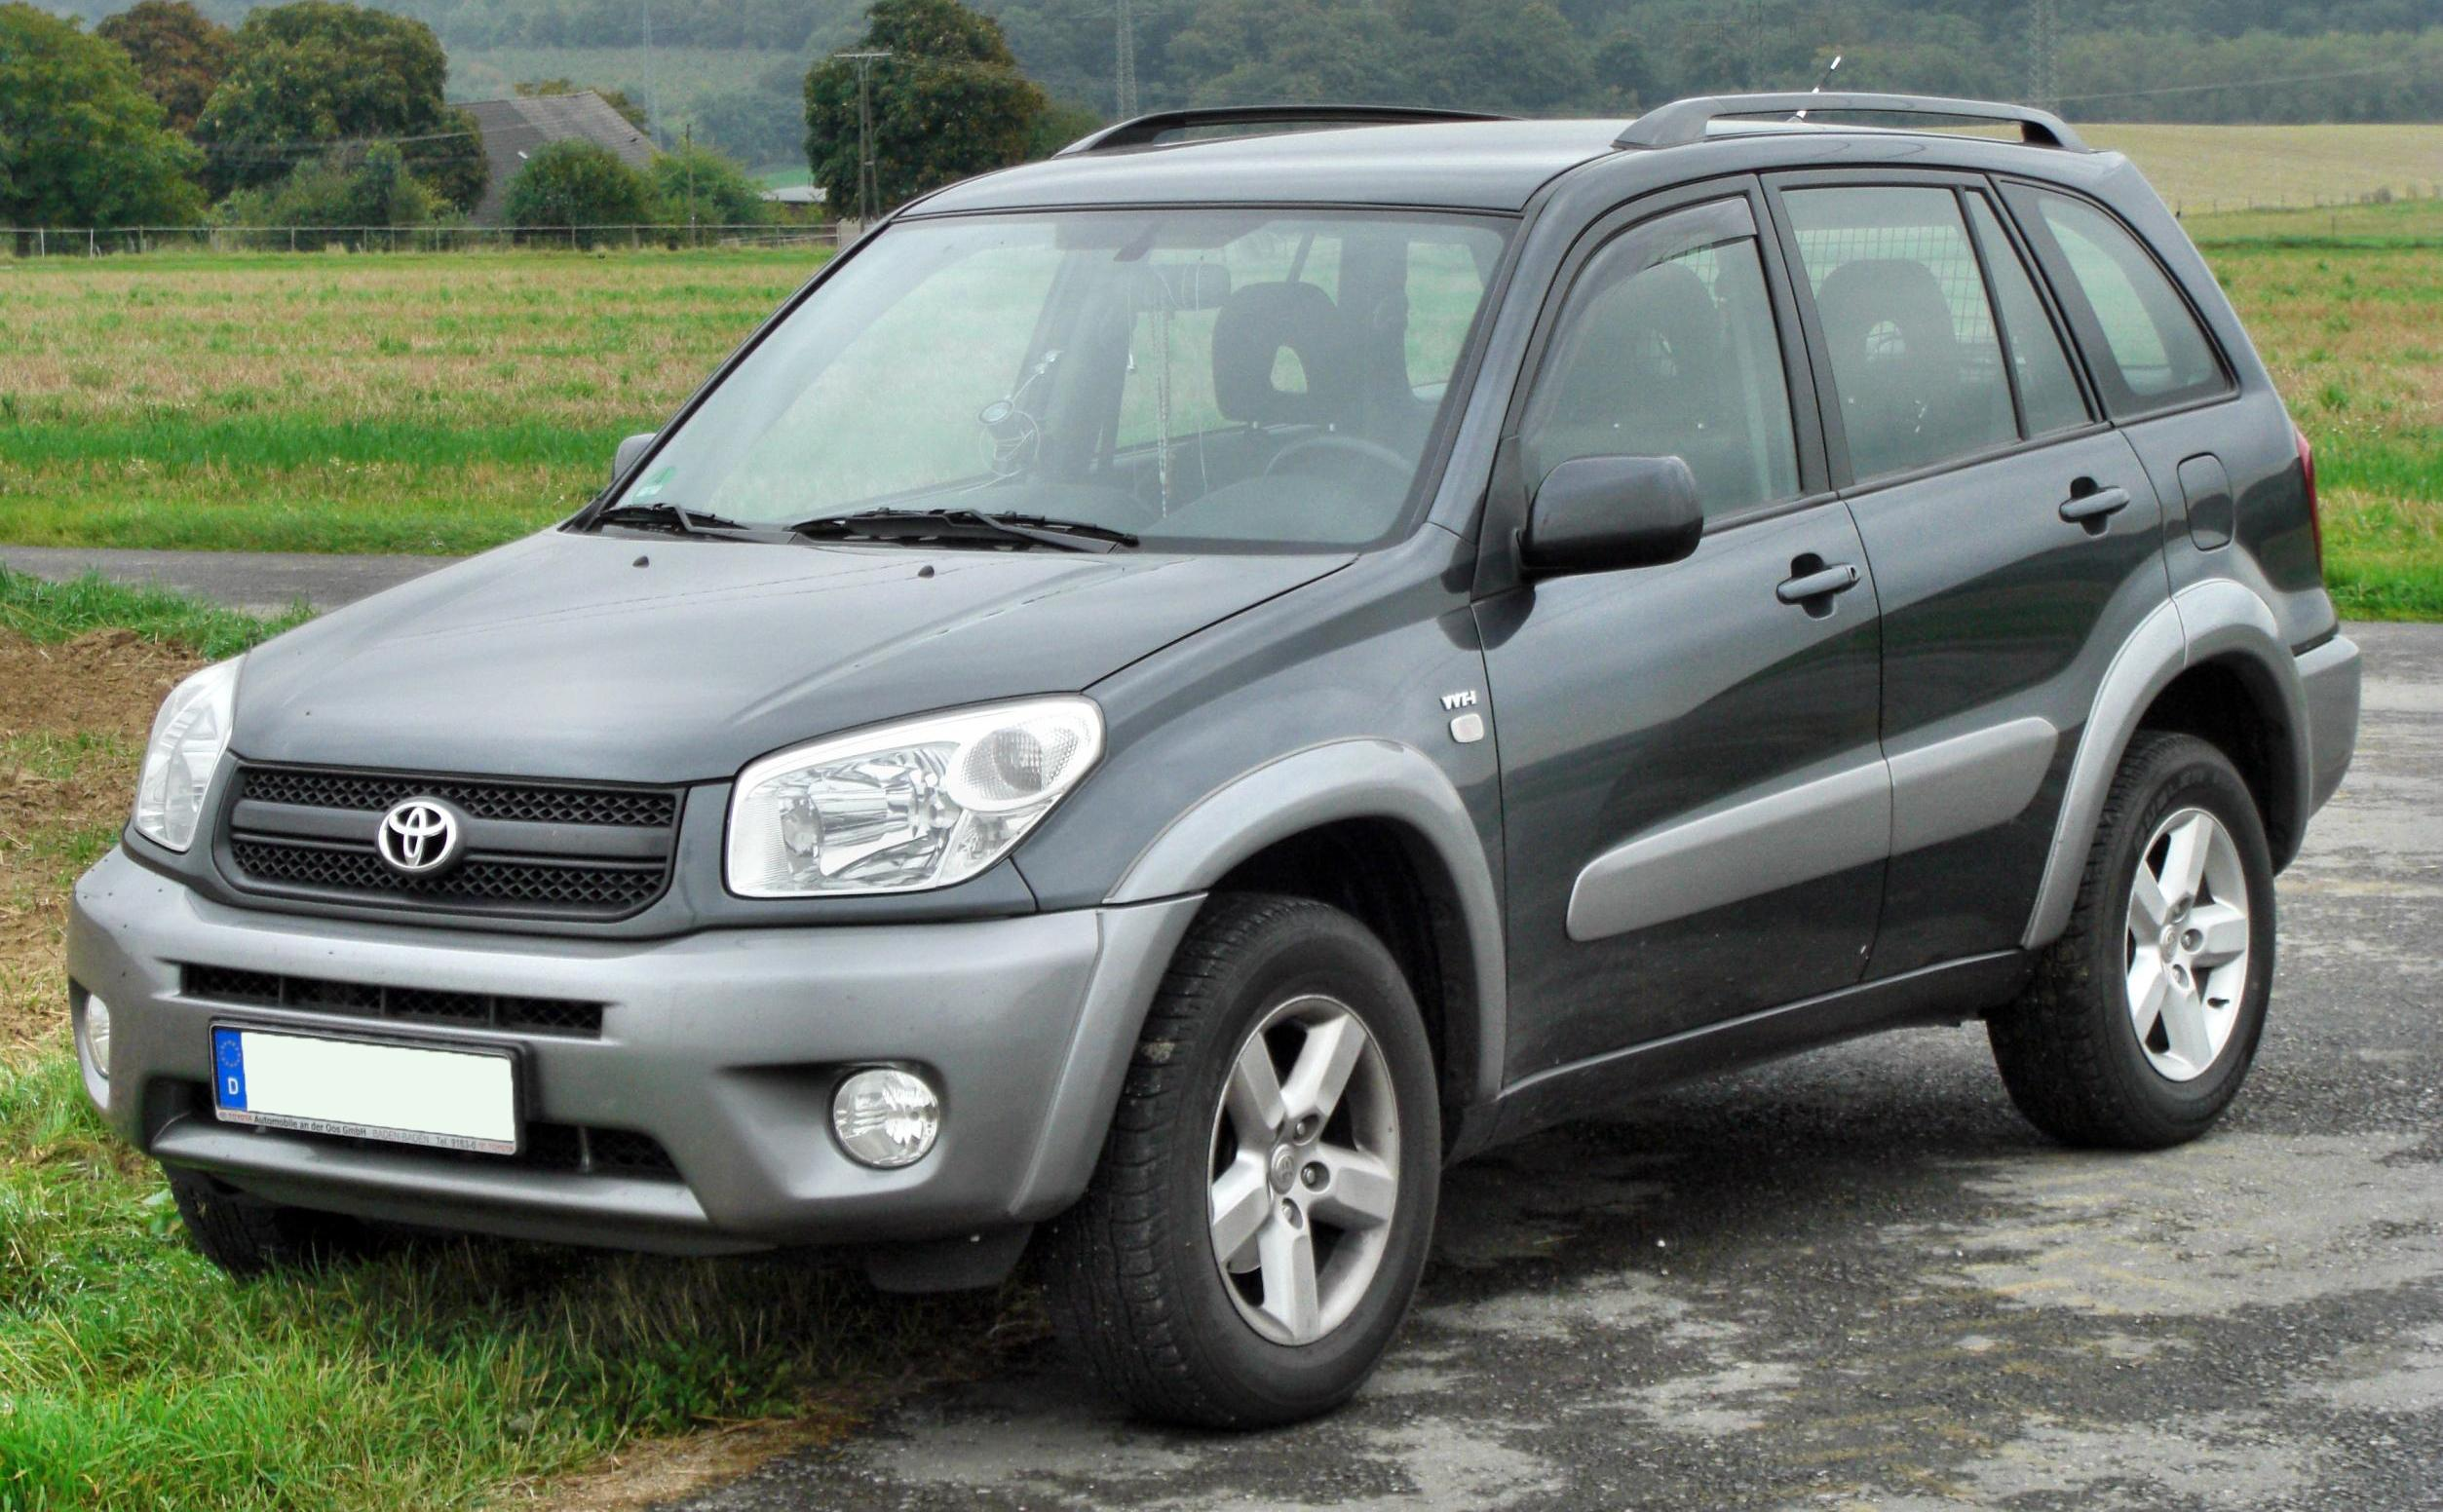 file toyota rav4 ii facelift front wikimedia commons. Black Bedroom Furniture Sets. Home Design Ideas